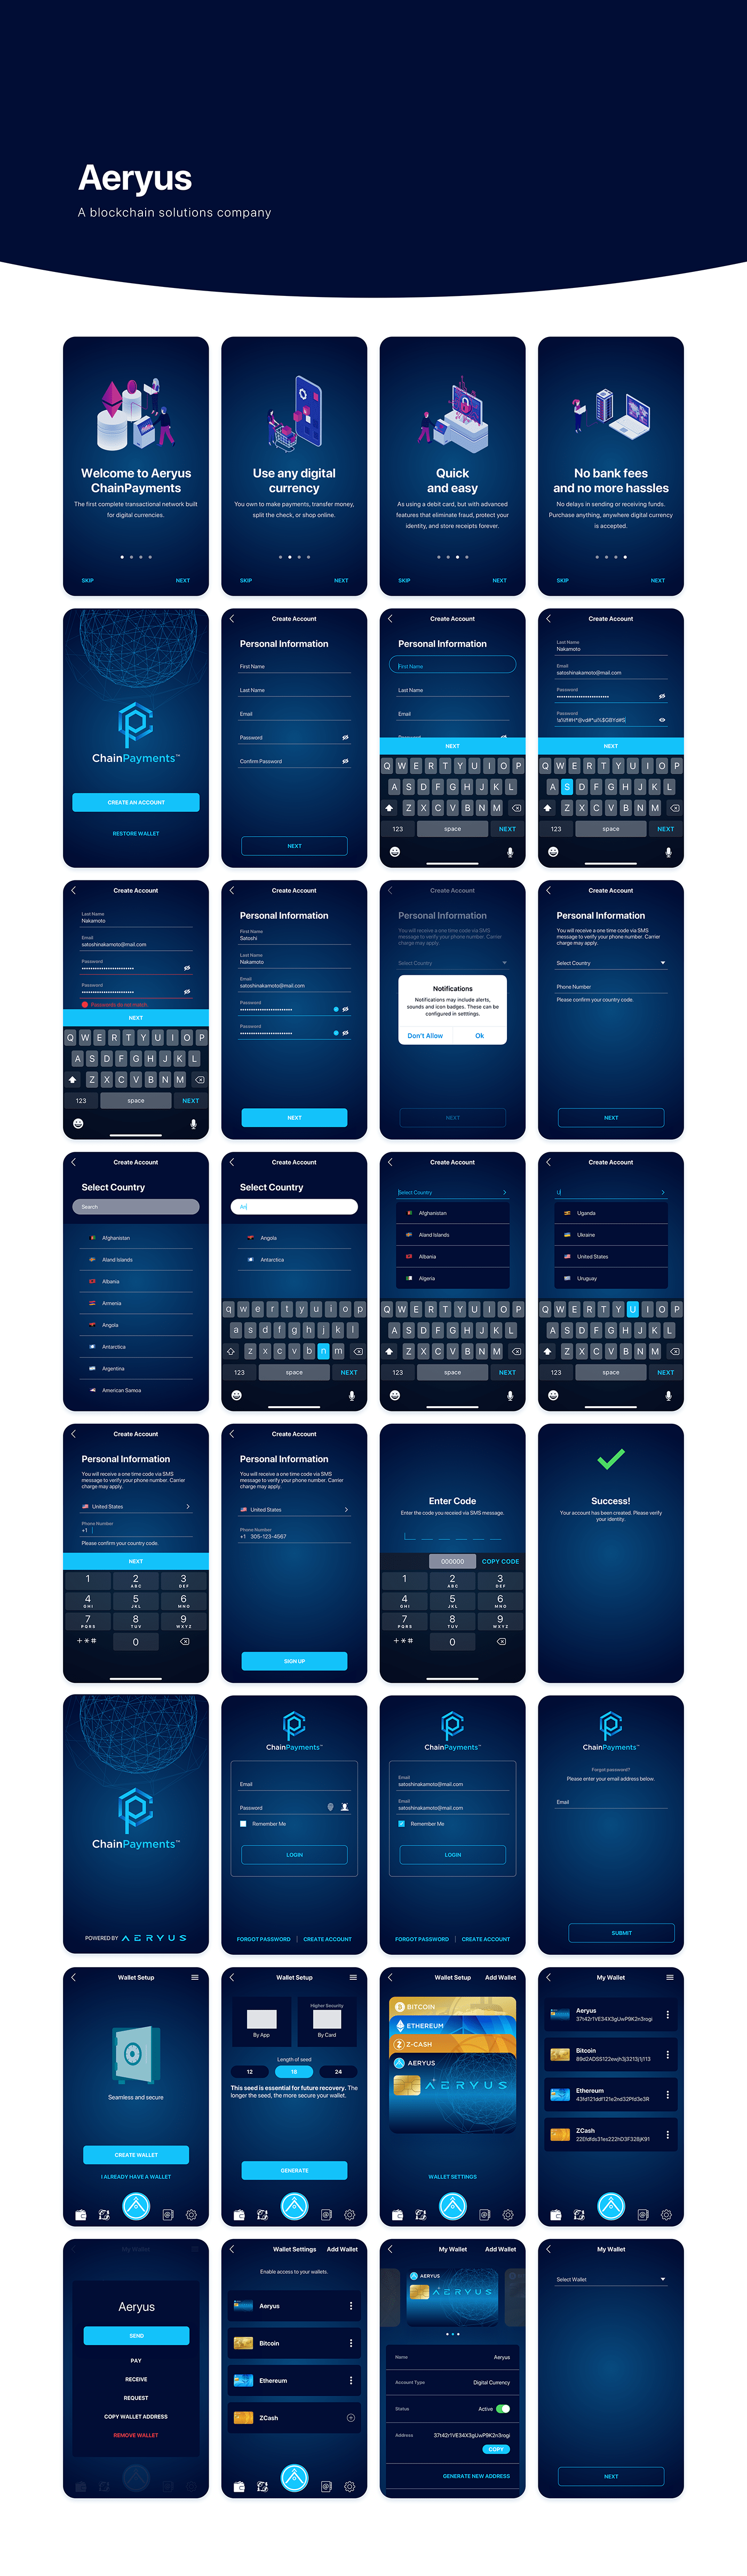 UI/UX user interface user experience Interaction design  Mobile app ios android blockchain digital currency